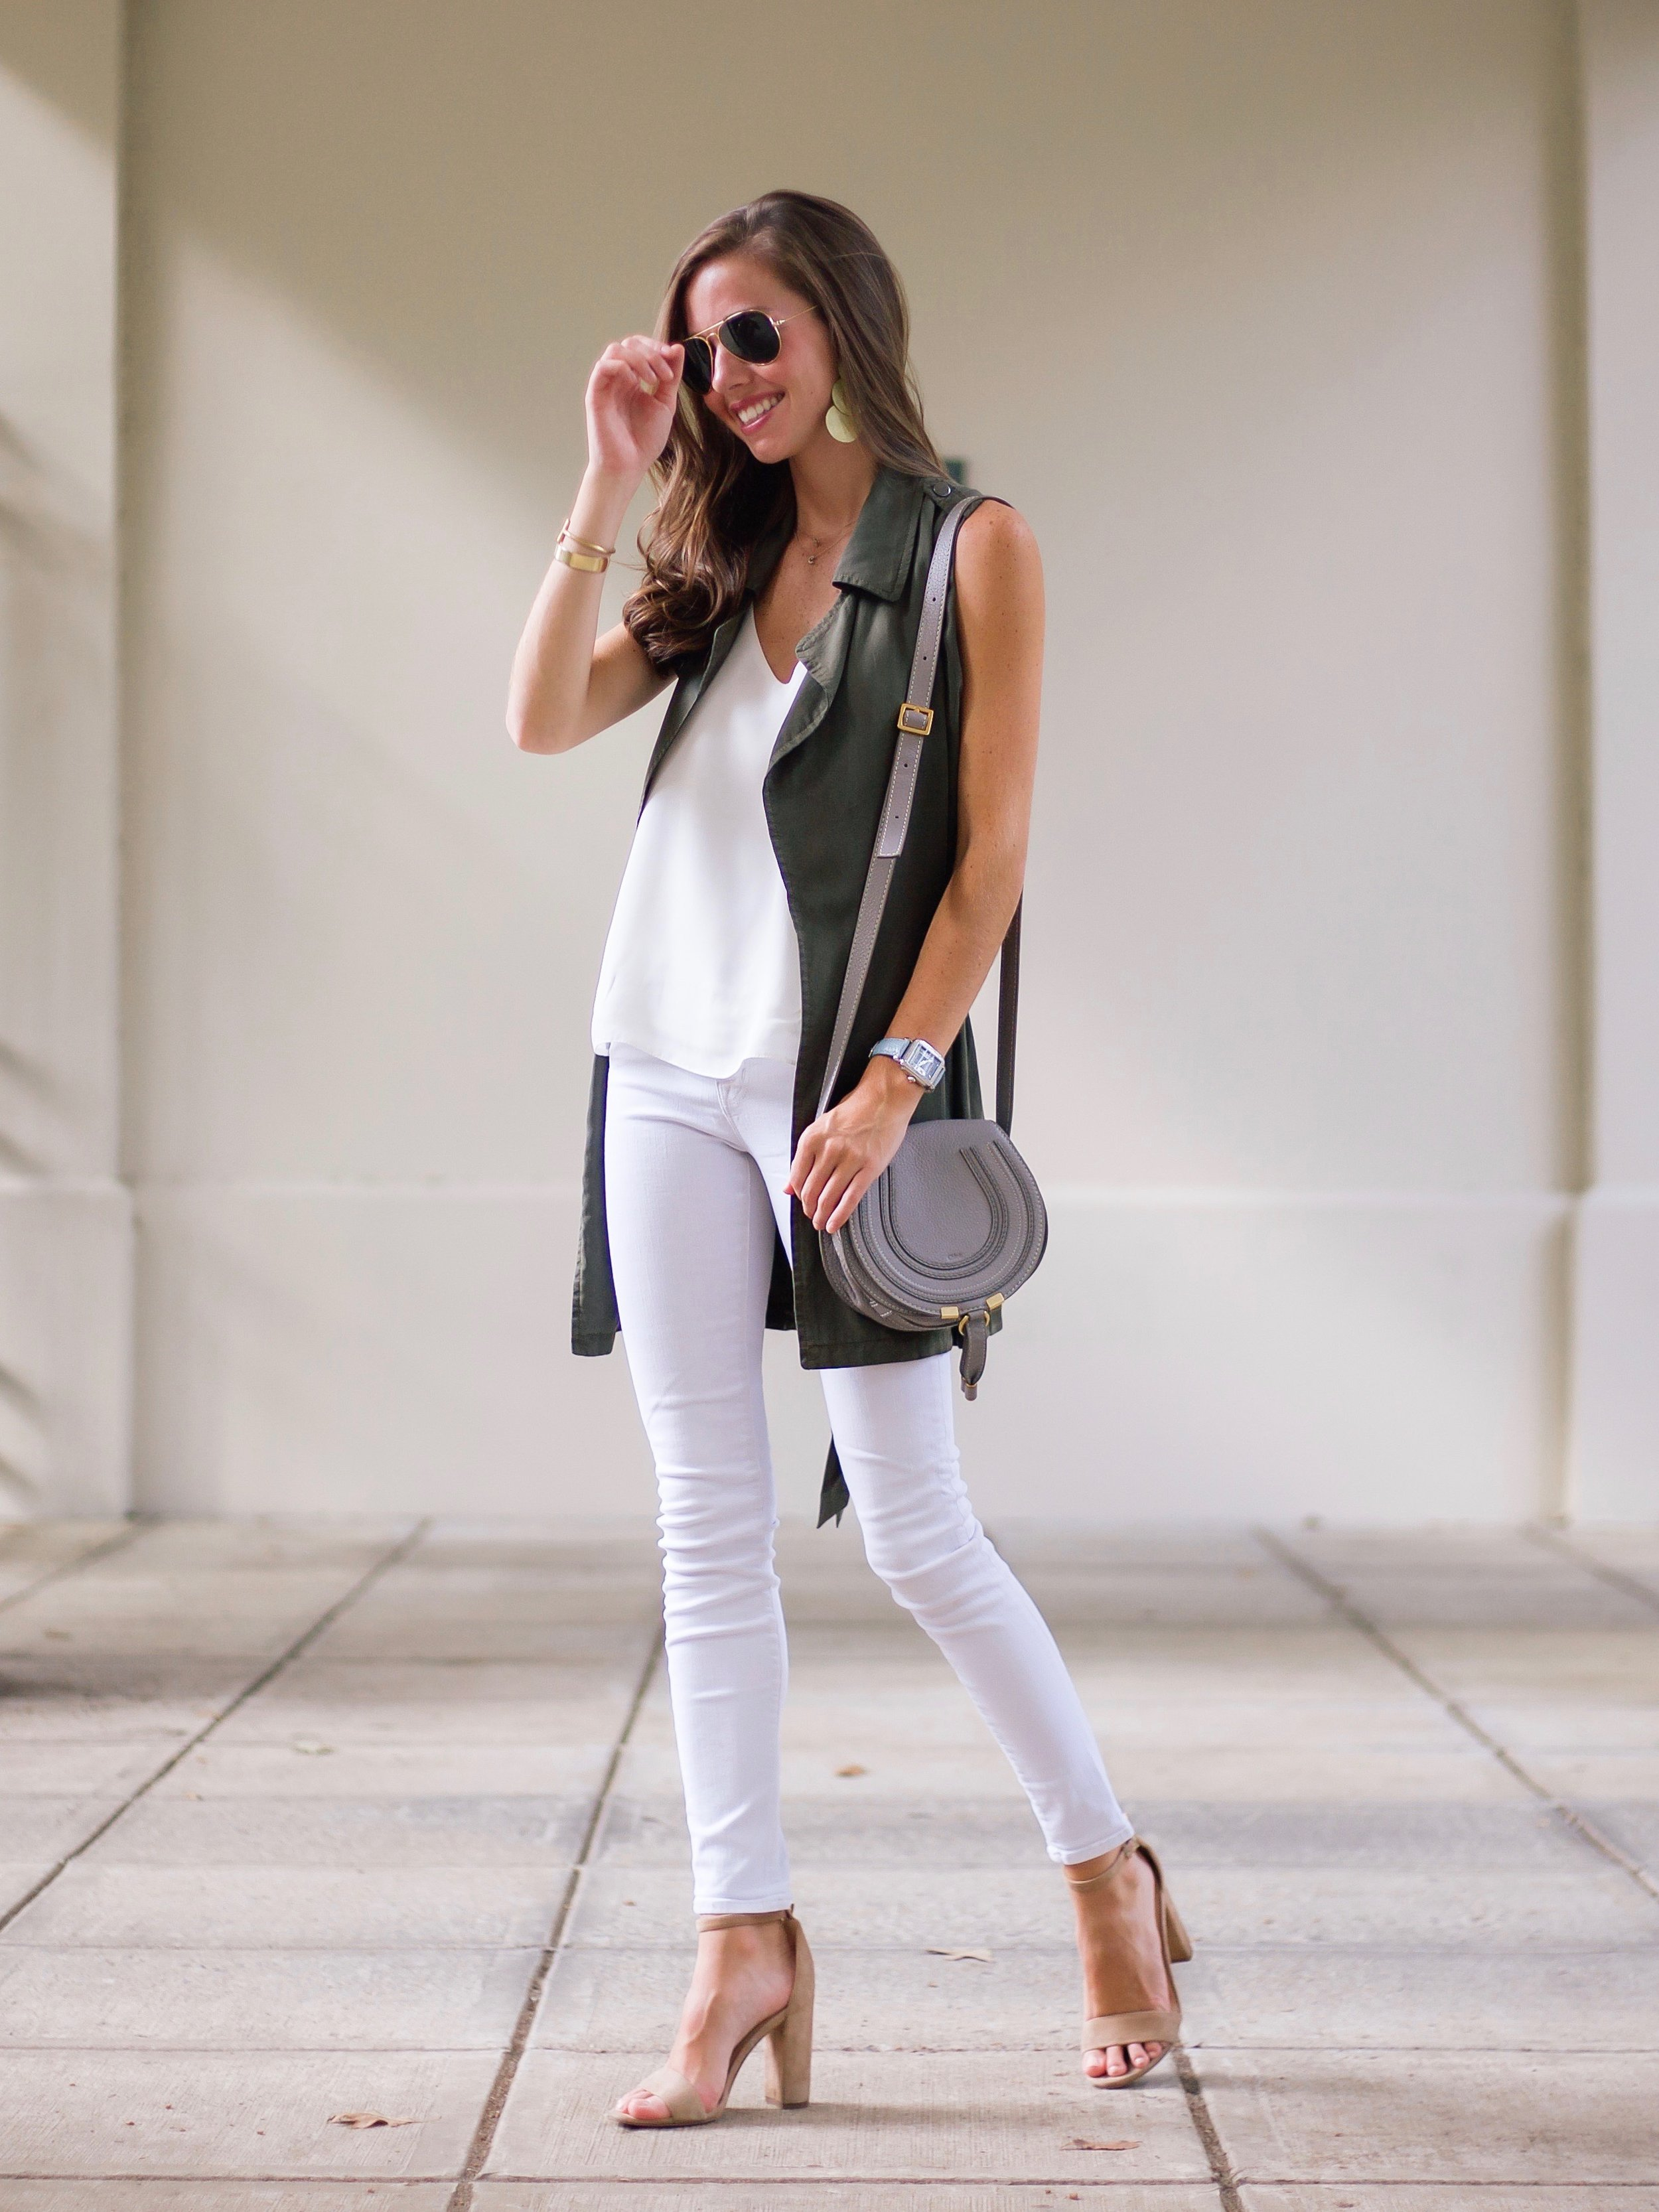 LCB STYLE FASHION BLOGGER MICHELE WATCHES (8 of 40).jpg